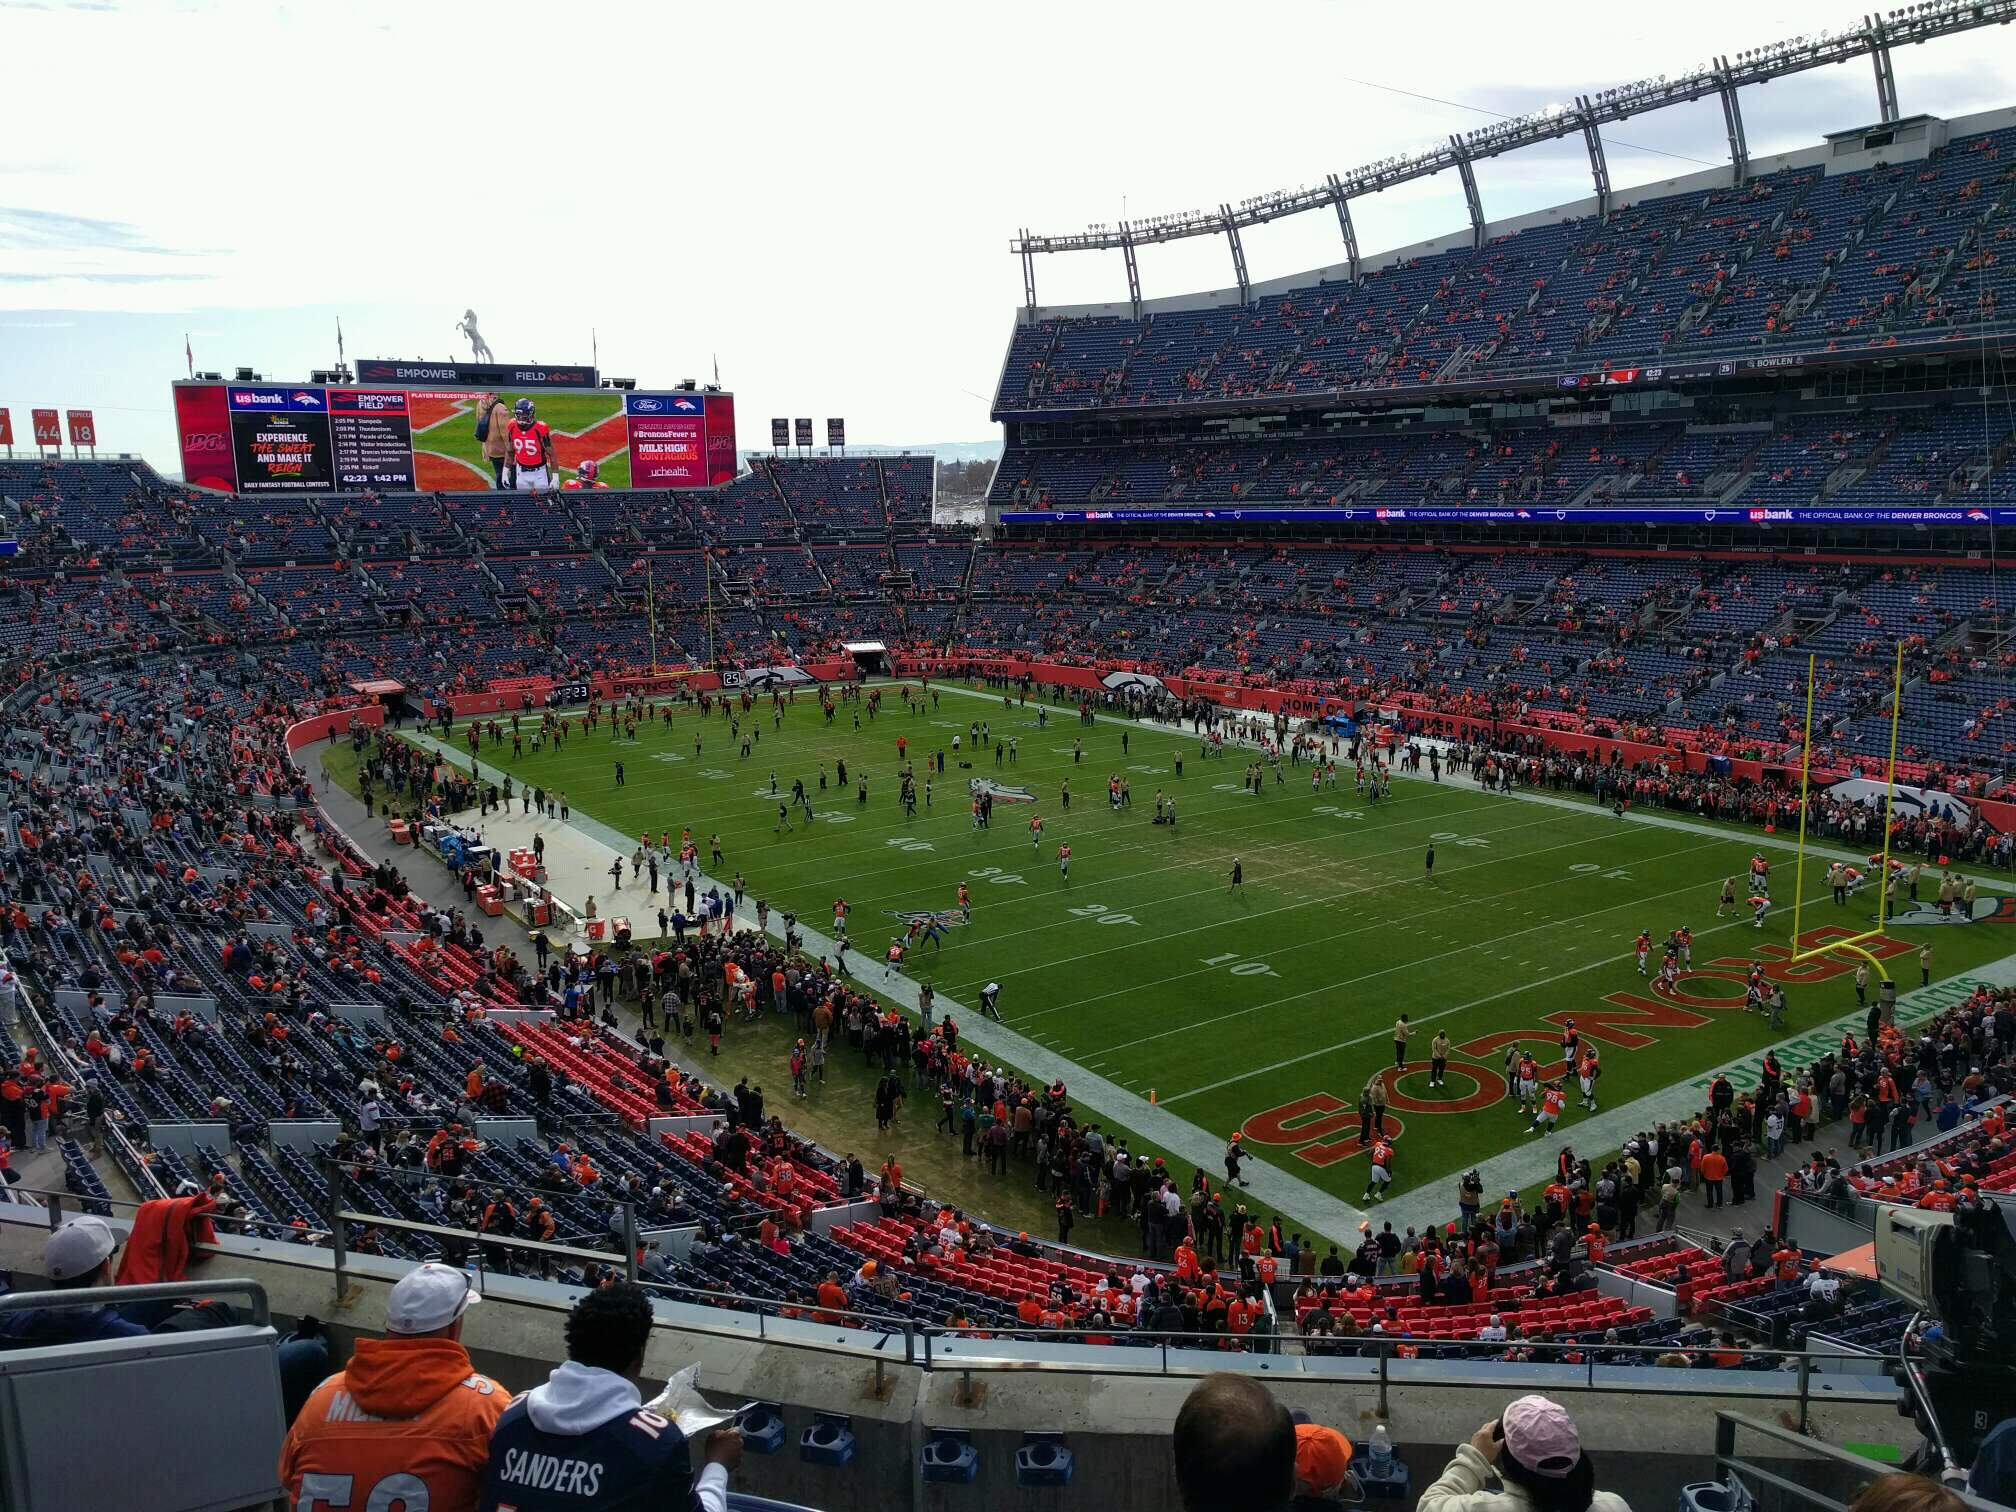 Empower Field at Mile High Stadium Section 328 Row 6 Seat 9